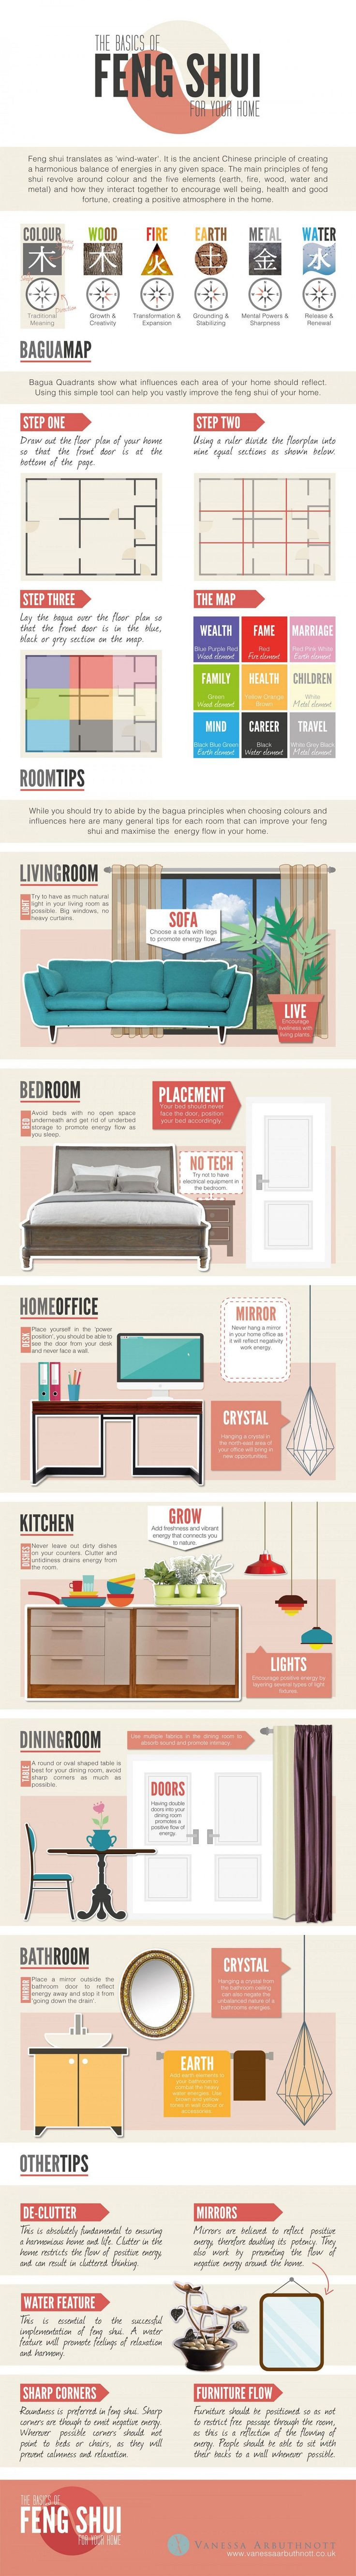 Best 25+ Feng shui symbols ideas on Pinterest | Feng shui for good health, Feng  shui your home and Feng shui and chi